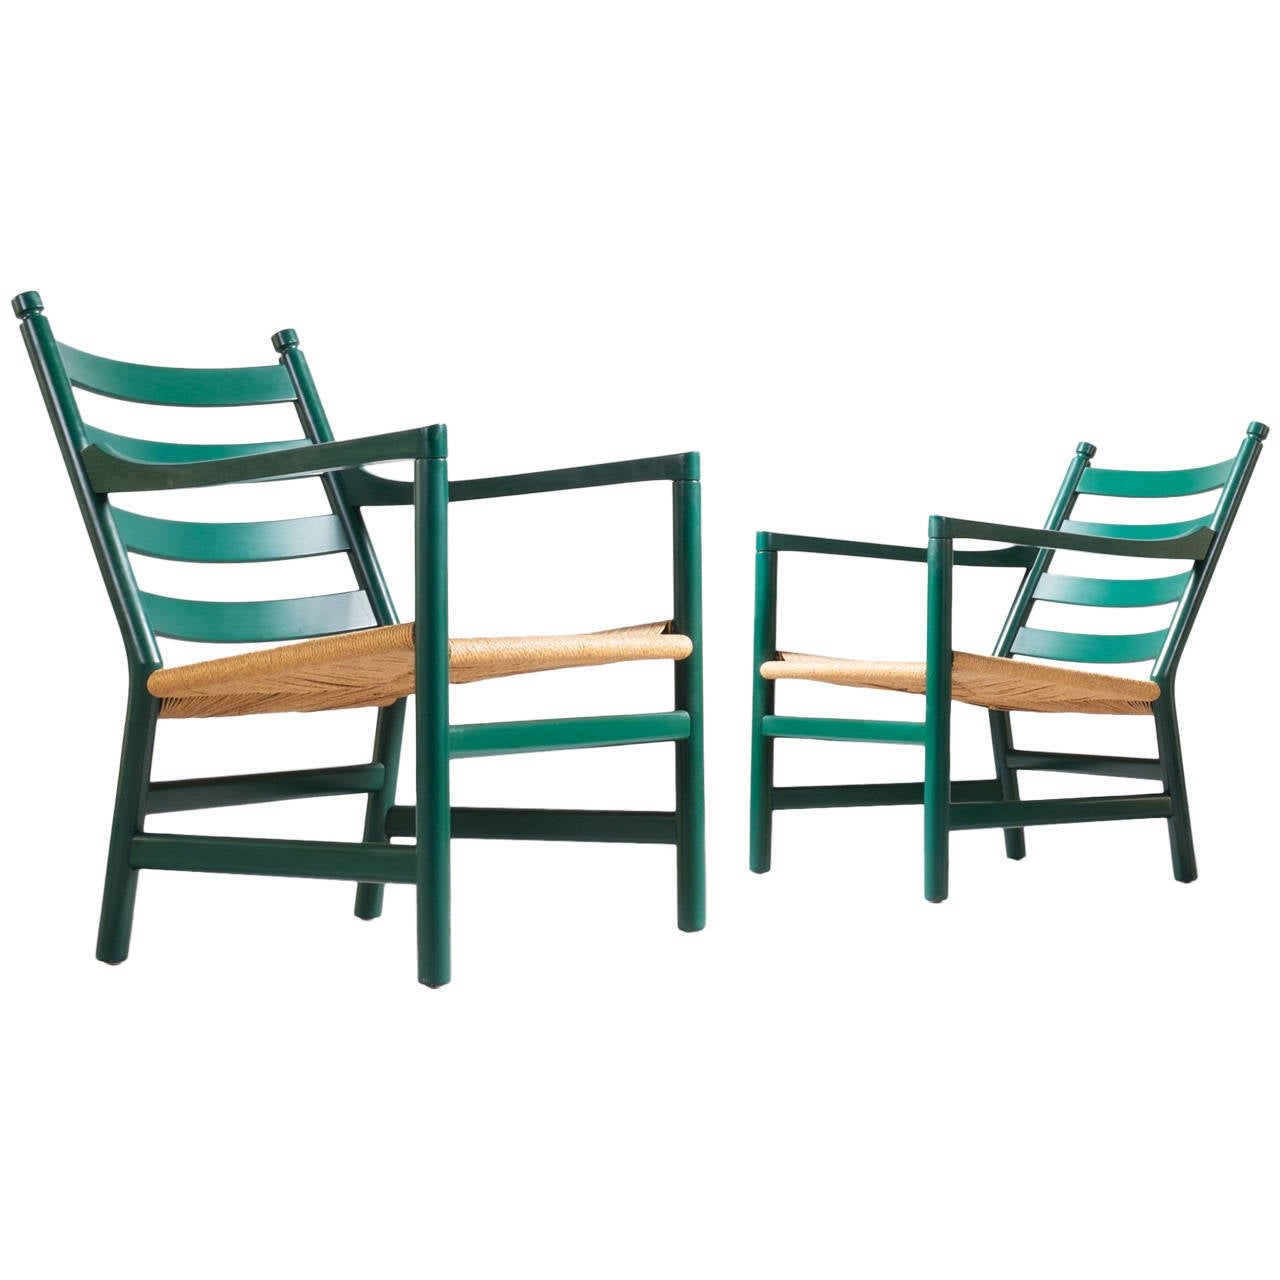 Pair of hans wegner lounge chairs at 1stdibs - Pair Of Two Easy Chairs Ch44 By Hans Wegner For Carl